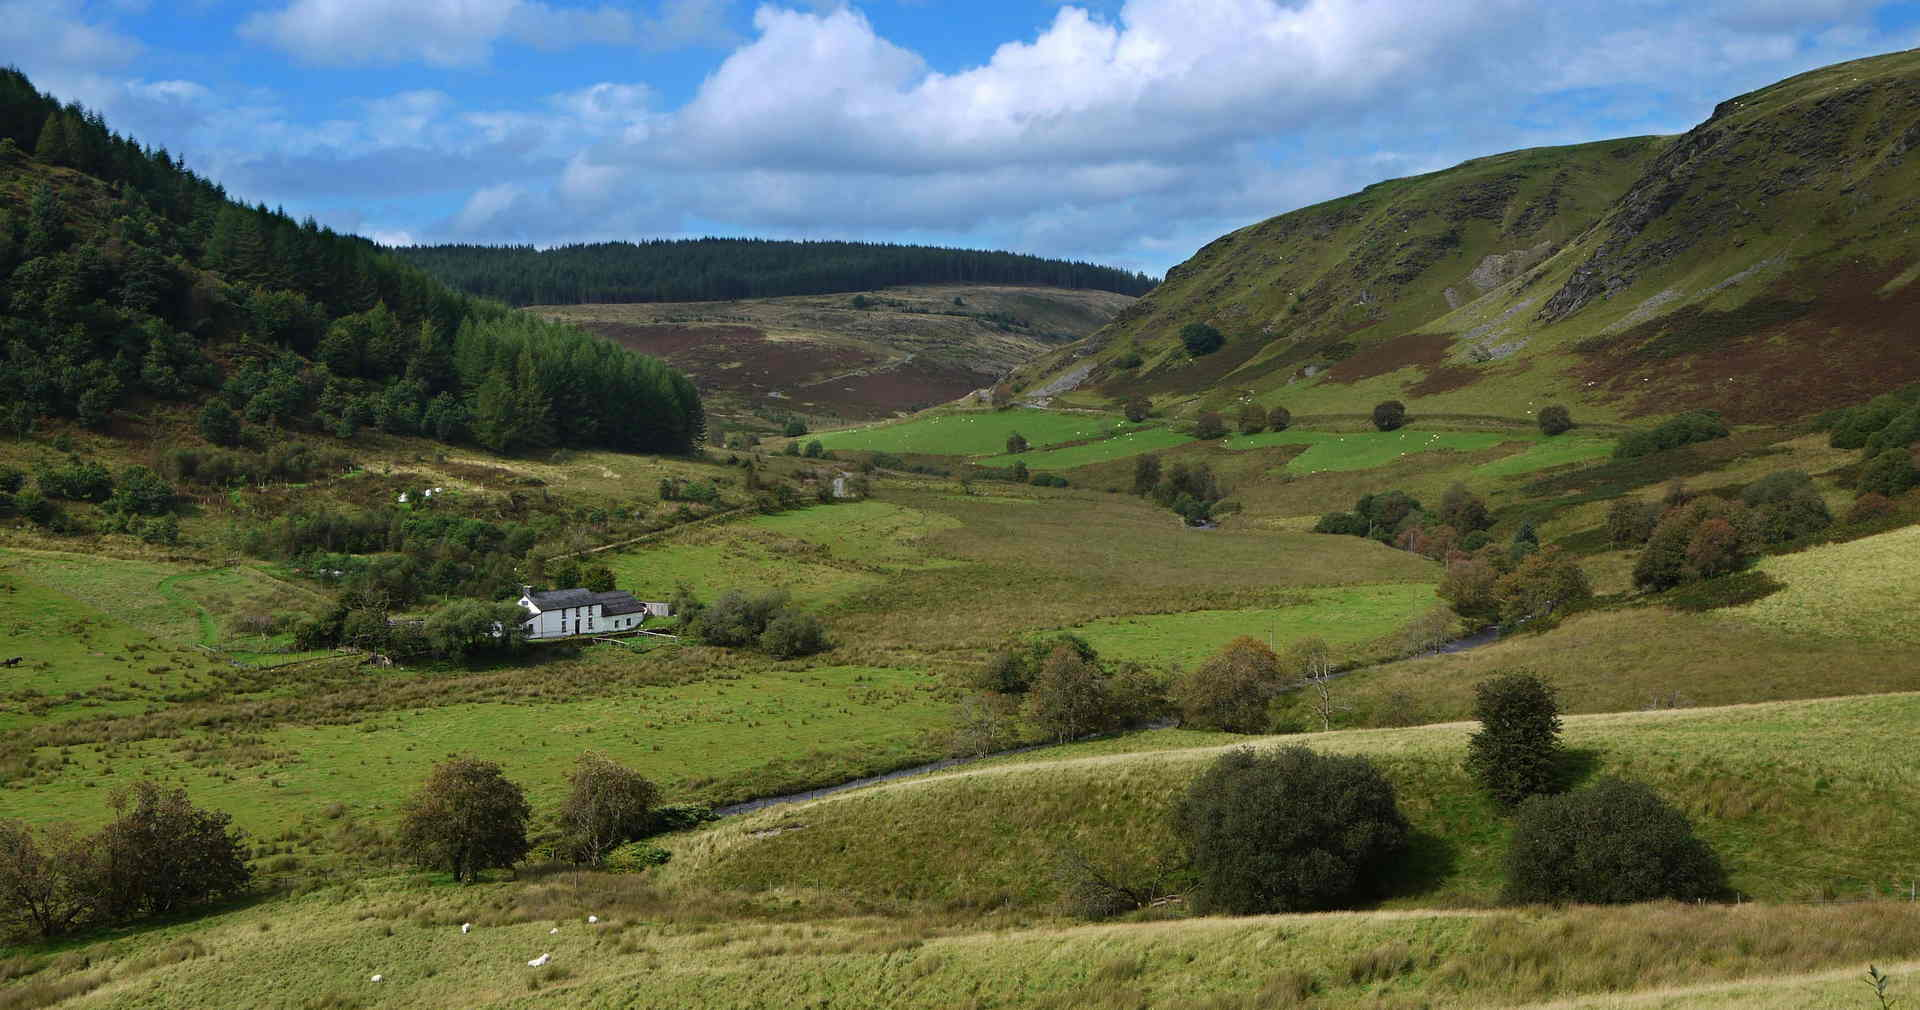 Ideal Eistedfod accommodation - 30 mins drive from Tregaron